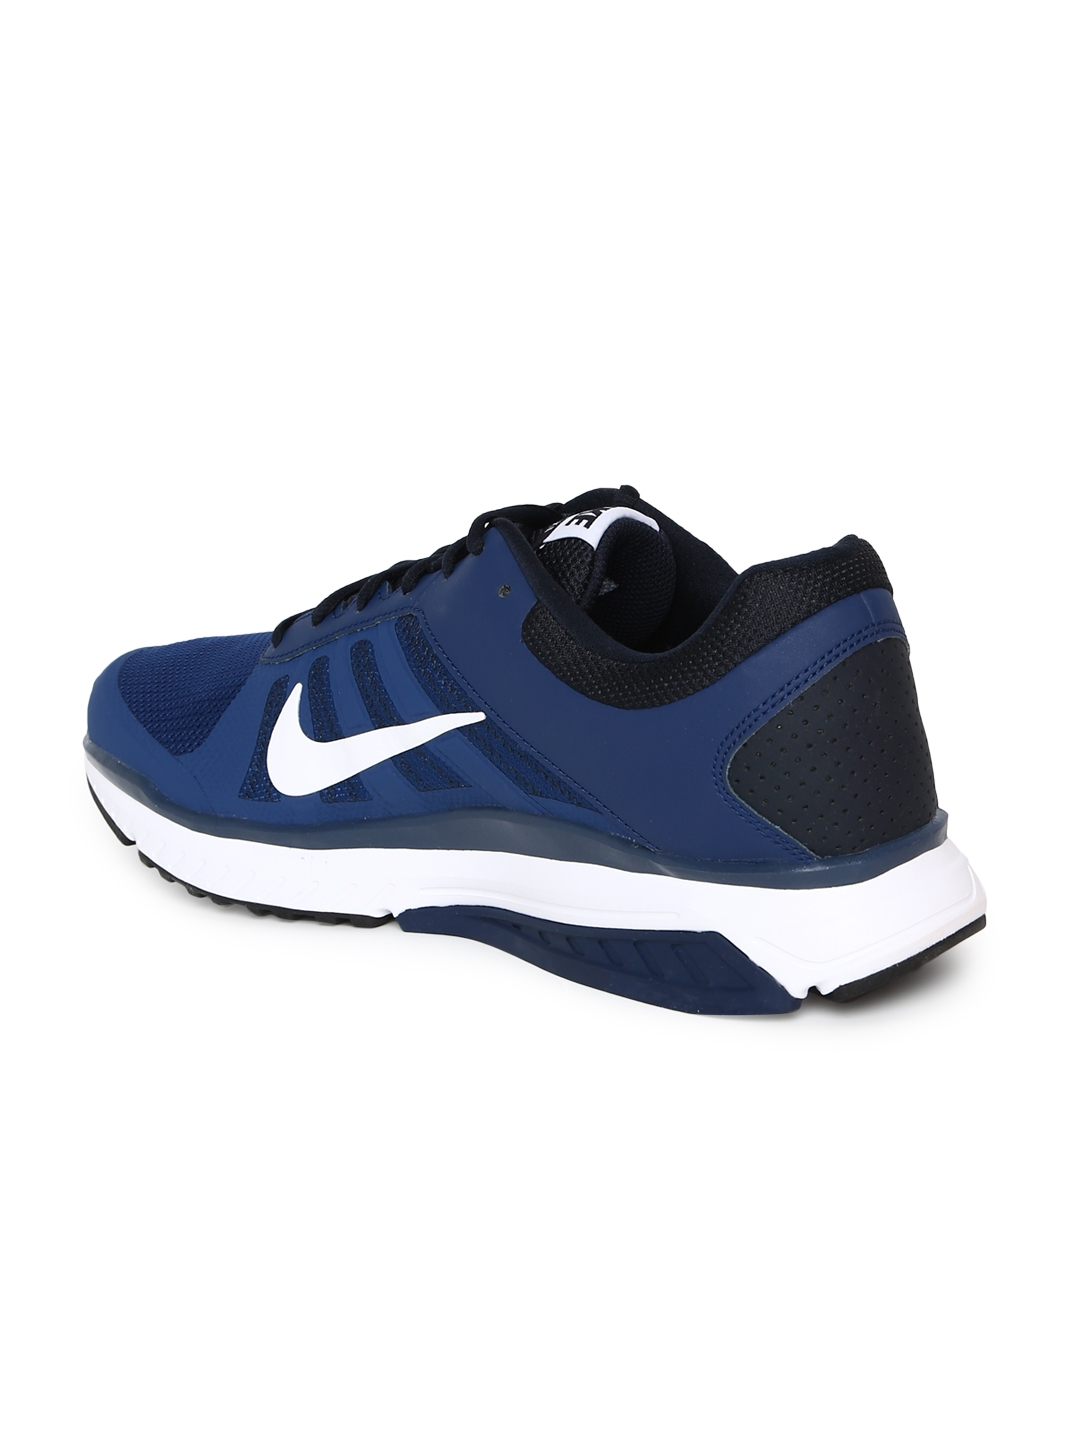 0e6cba731f8a Buy Nike Men Navy Blue DART 12 MSL Running Shoes - Sports Shoes for ...